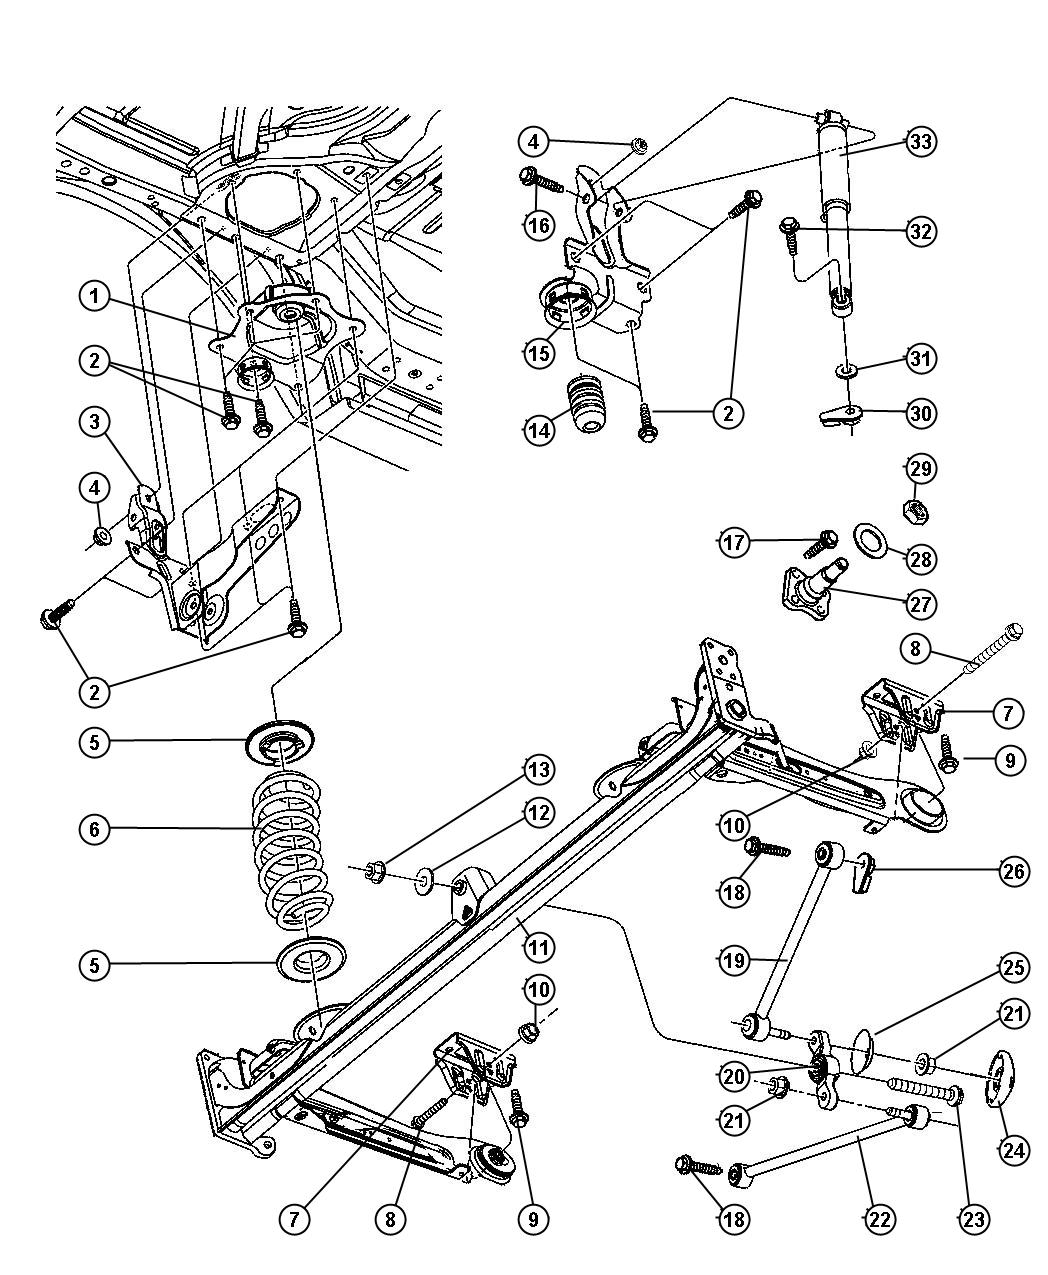 2002 pt cruiser suspension diagram